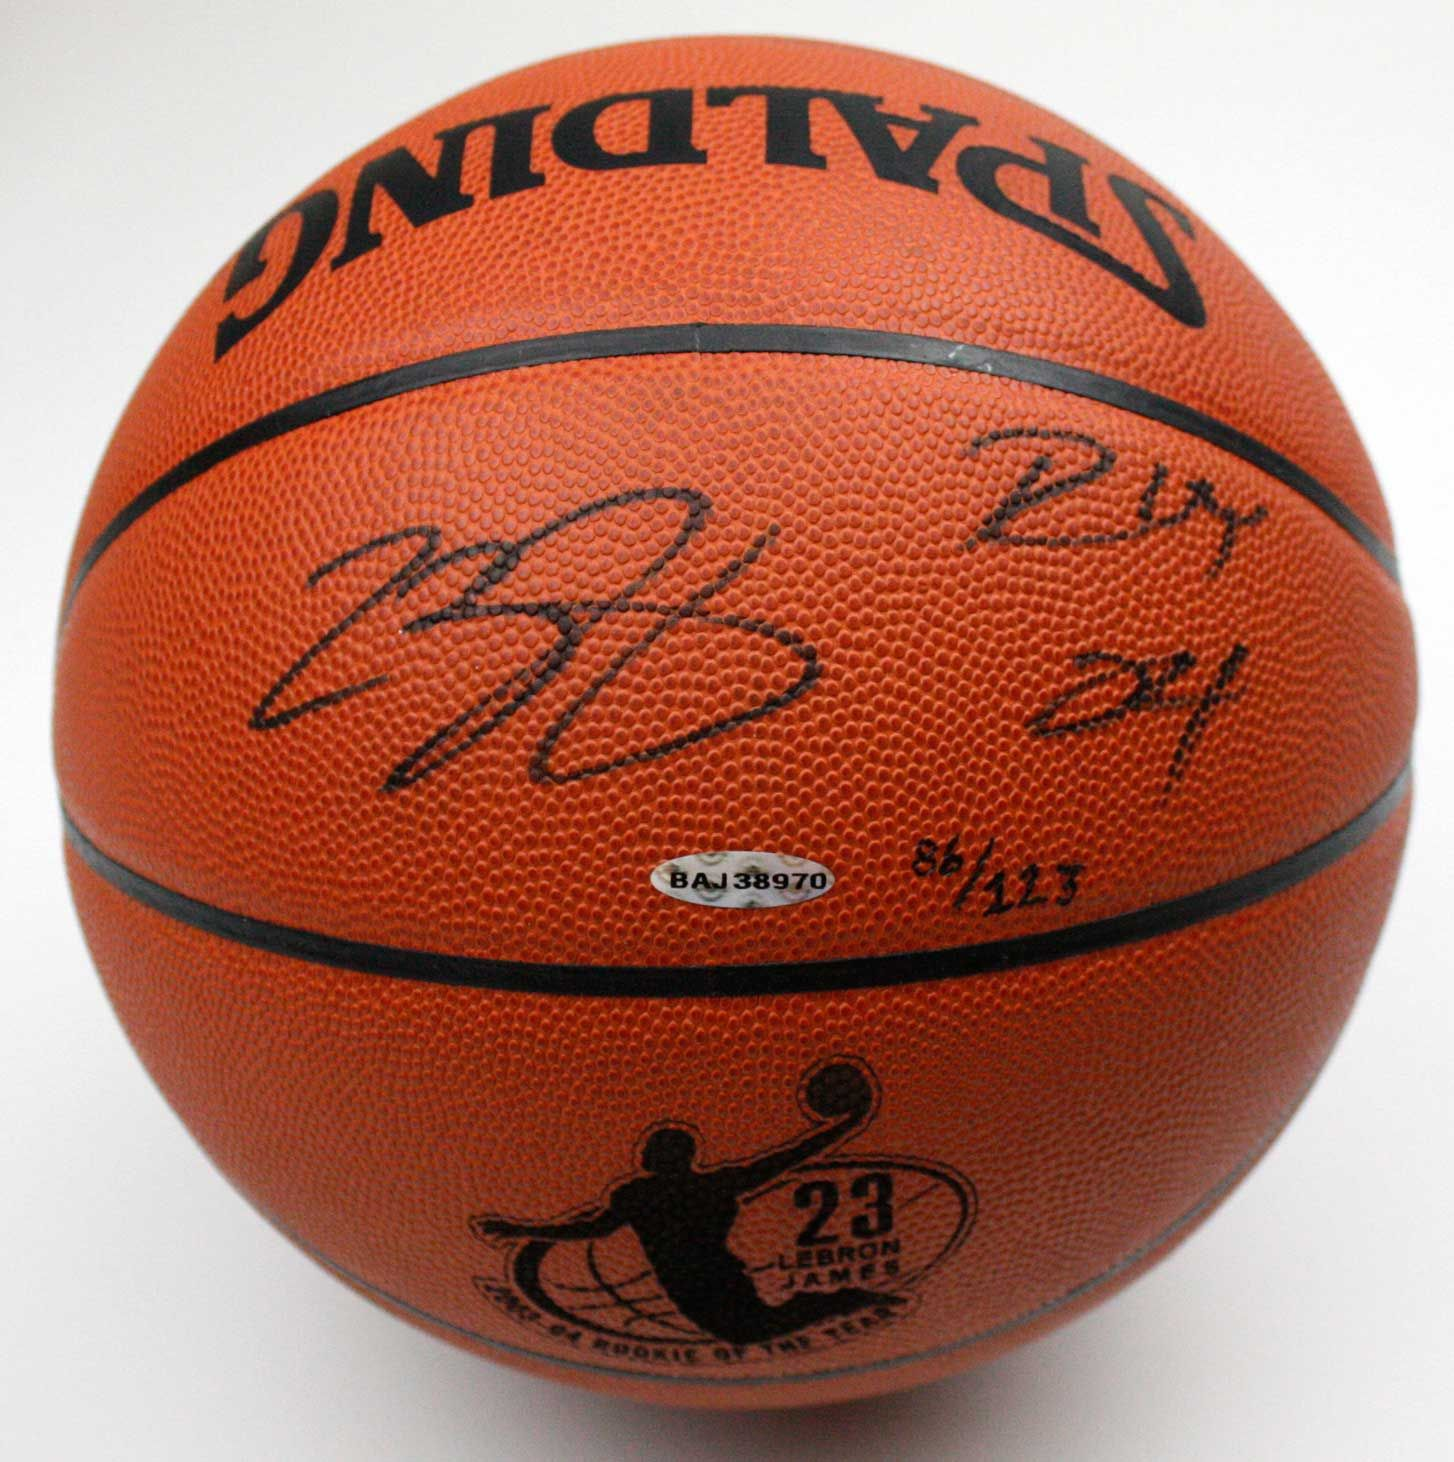 lebron james autograph - photo #26